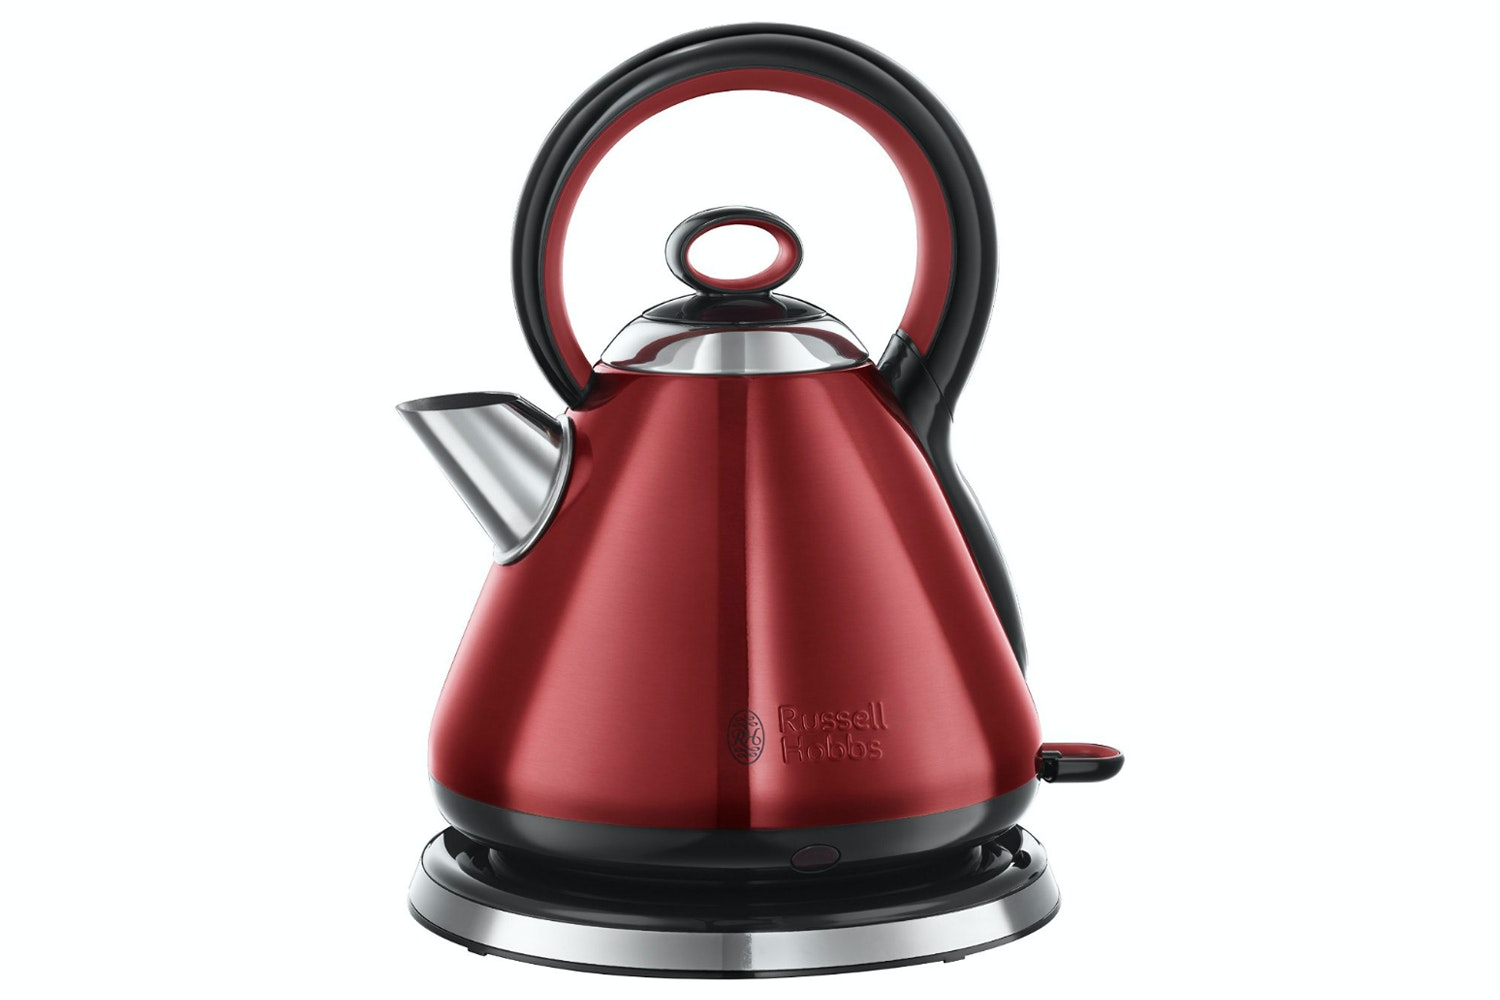 Russell Hobbs Legacy Metallic Red Kettle